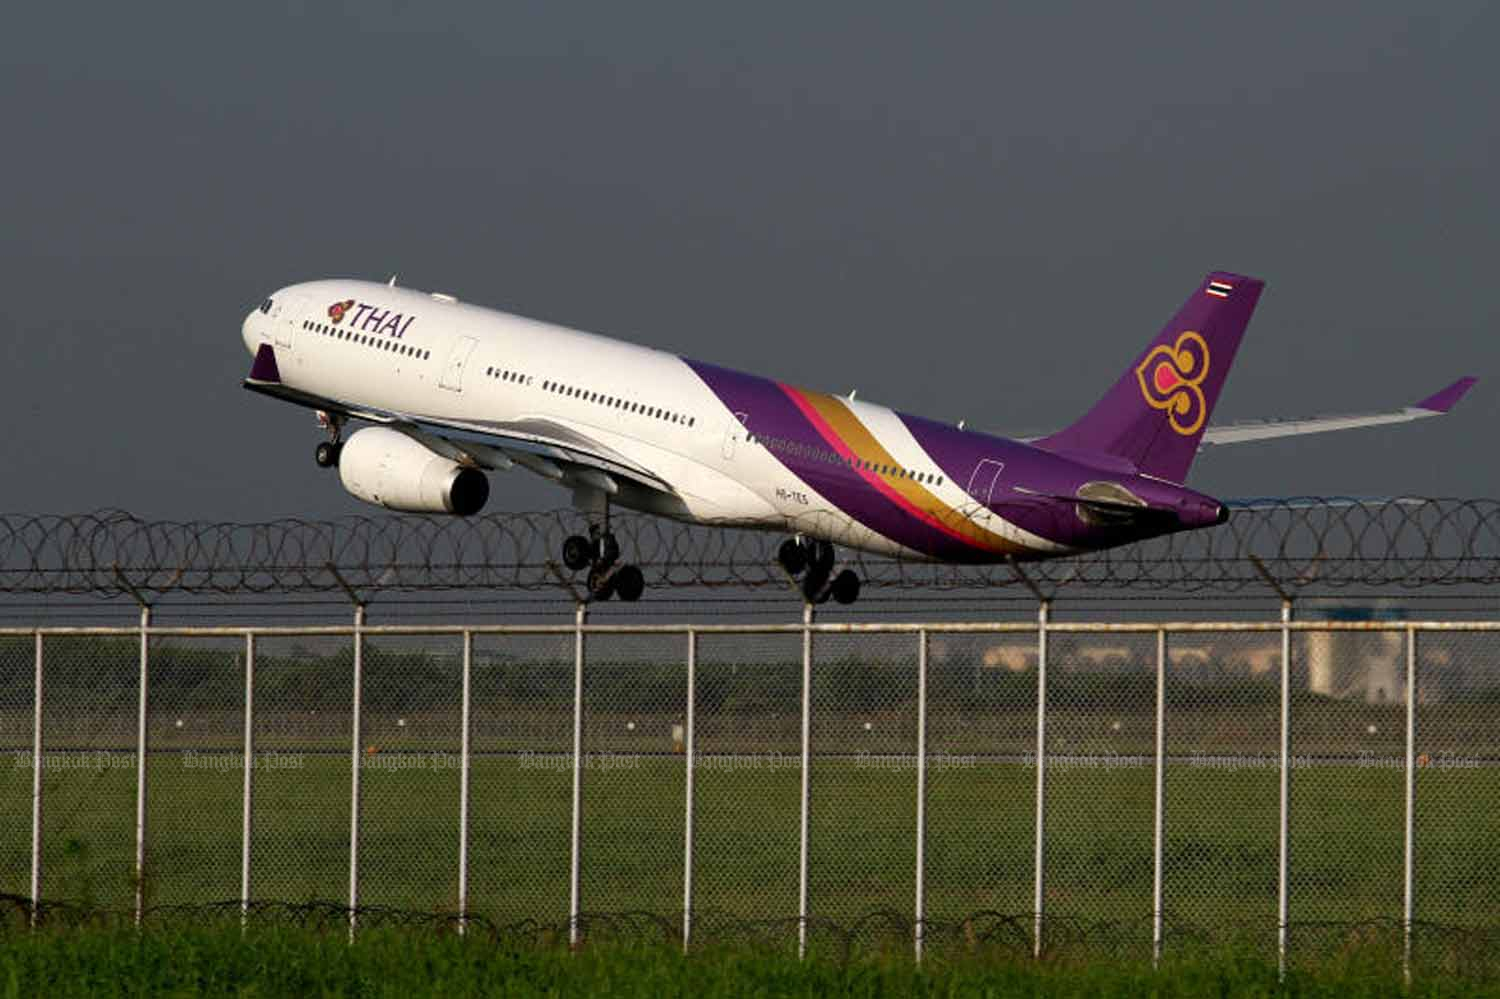 Thai Airways International is expected to post a loss of around 2.2 billion baht this year.